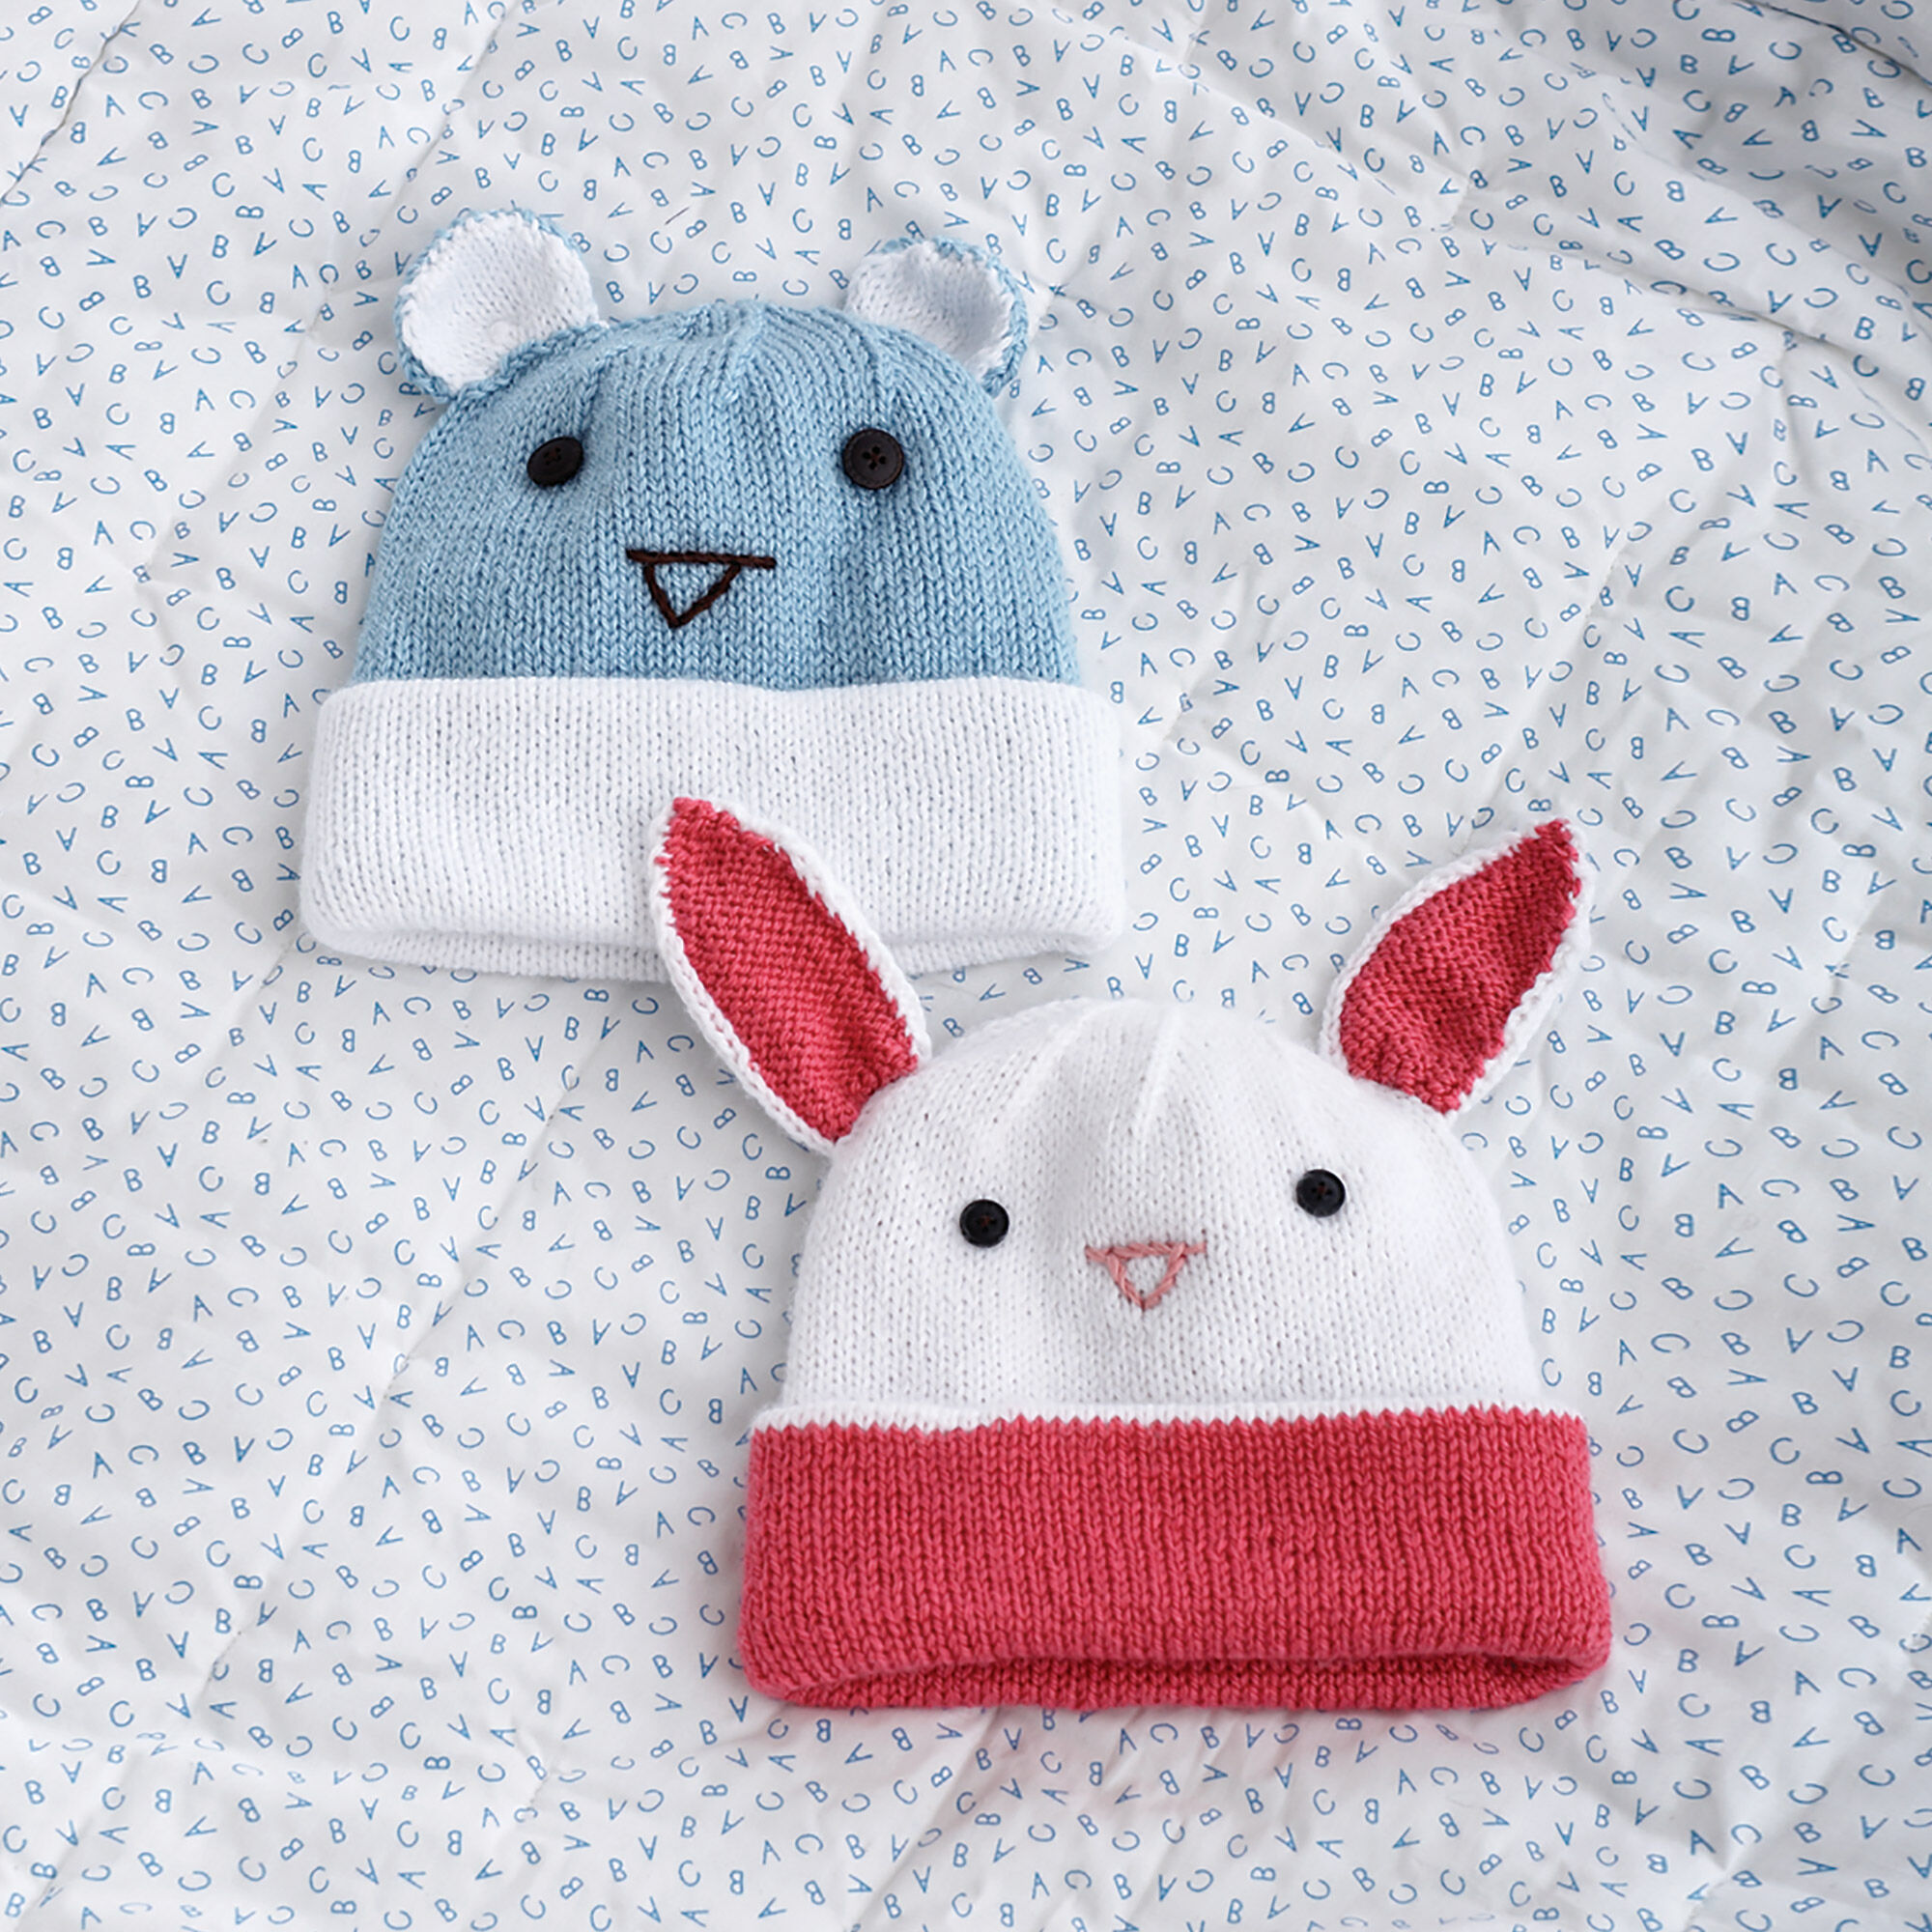 Bernat Knit Hats with Ears, Bunny | Yarnspirations